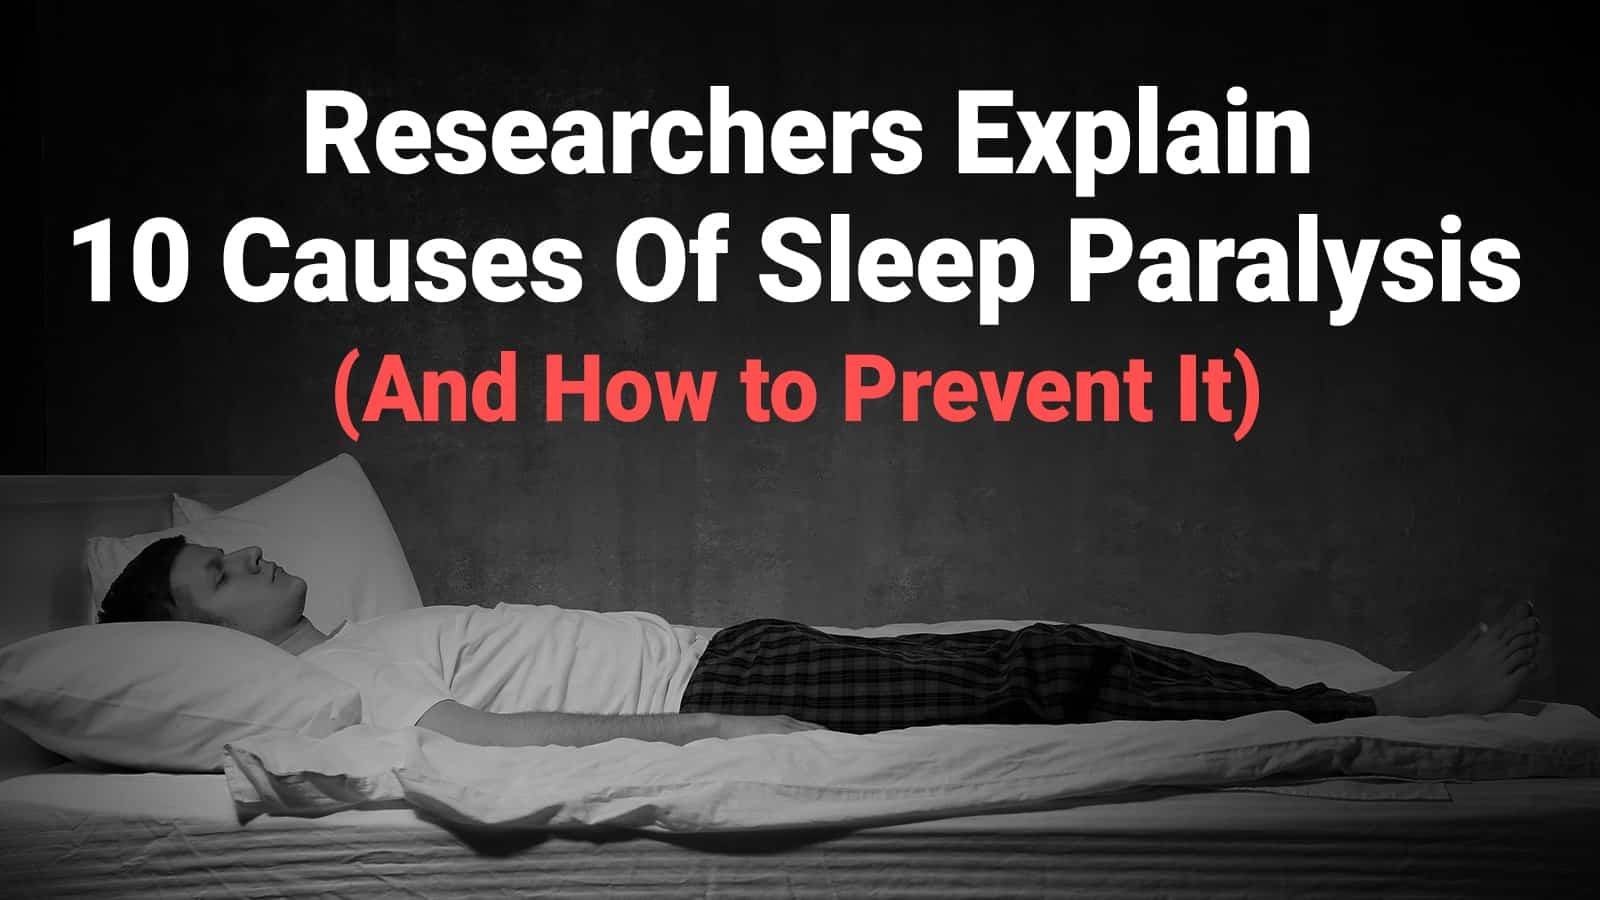 Researchers Explain 10 Causes Of Sleep Paralysis (And How to